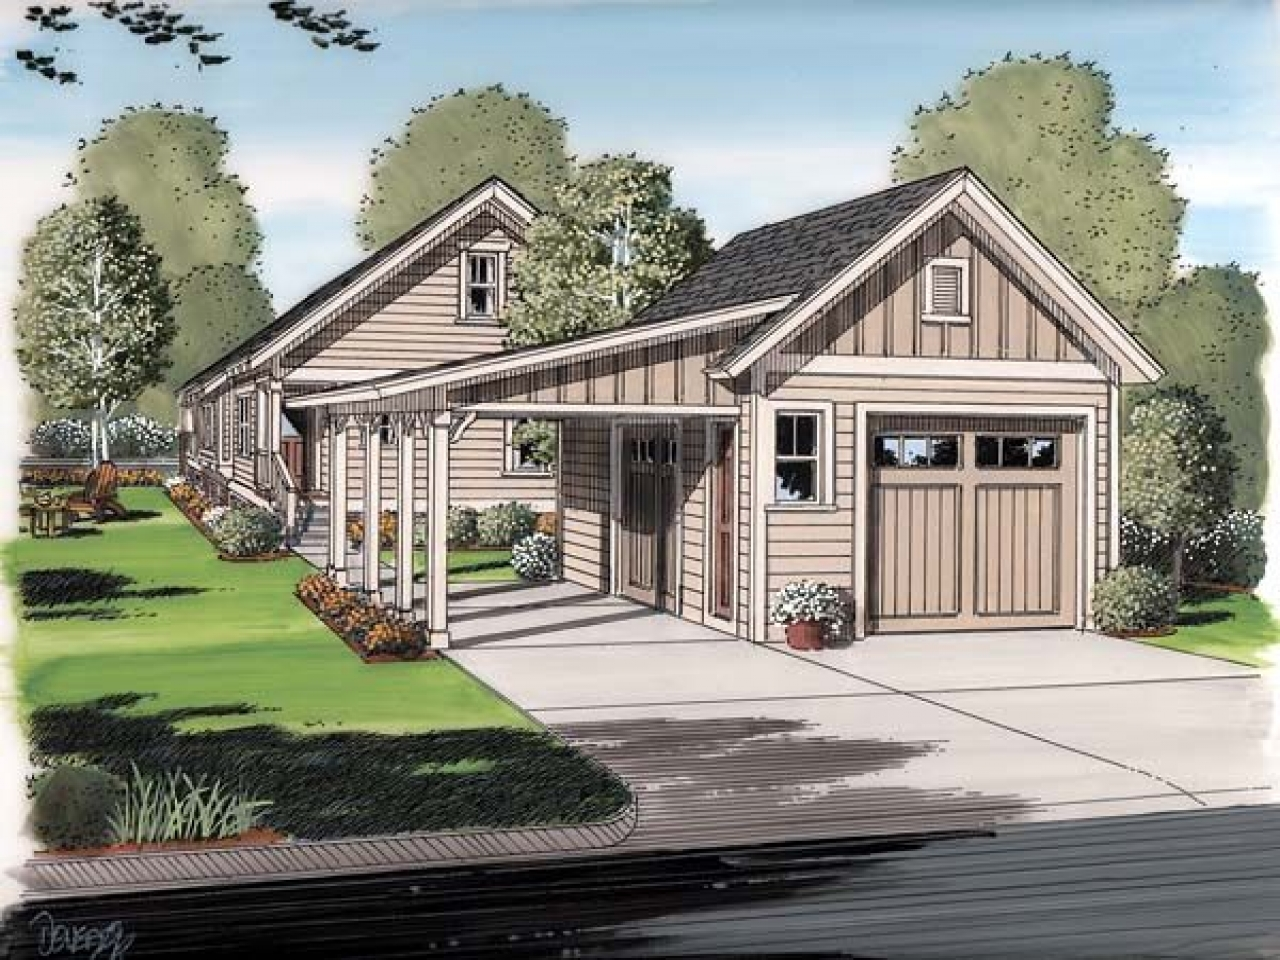 Cottage House Plans With Garage Cottage House Plans With Wrap Around Porch Bungalow Plans With